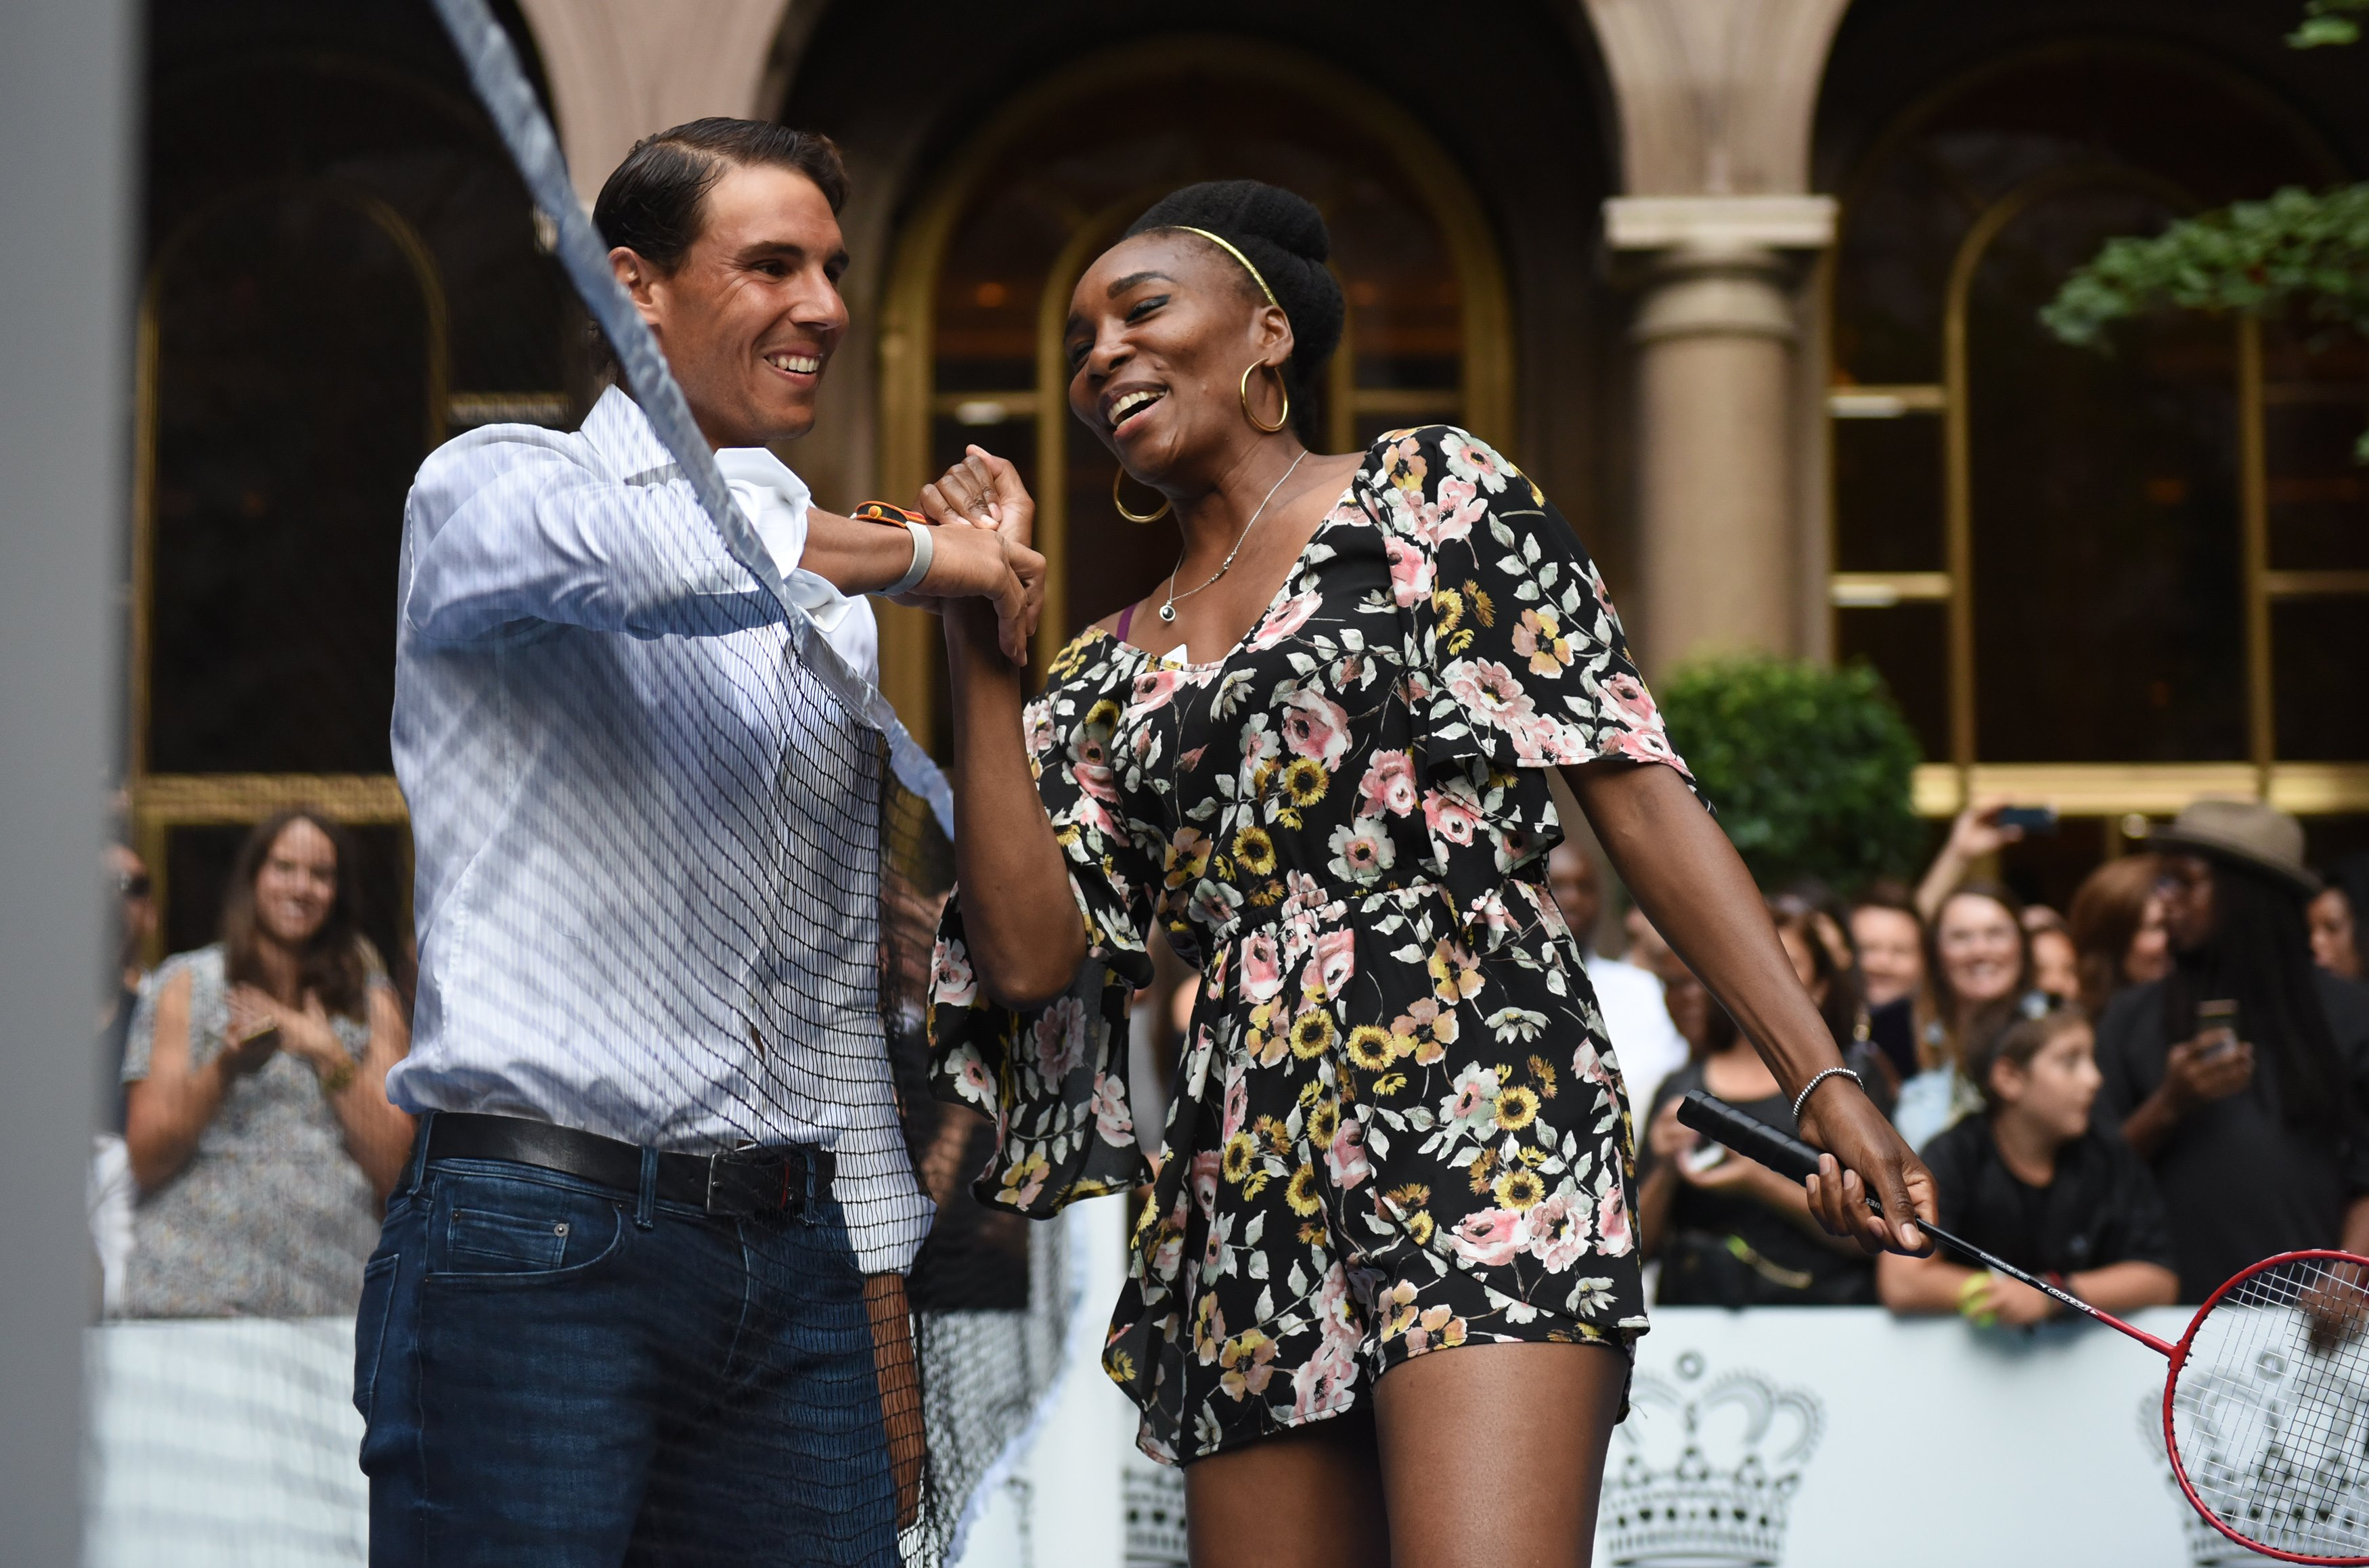 Venus Williams of the USA jokes with world number one tennis player Rafael Nadal of Spain as they participate in the Lotte New York Palace Invitational Badminton Tournament at the Lotte New York Palace in New York August 24, 2017. / AFP PHOTO / TIMOTHY A. CLARY        (Photo credit should read TIMOTHY A. CLARY/AFP/Getty Images)